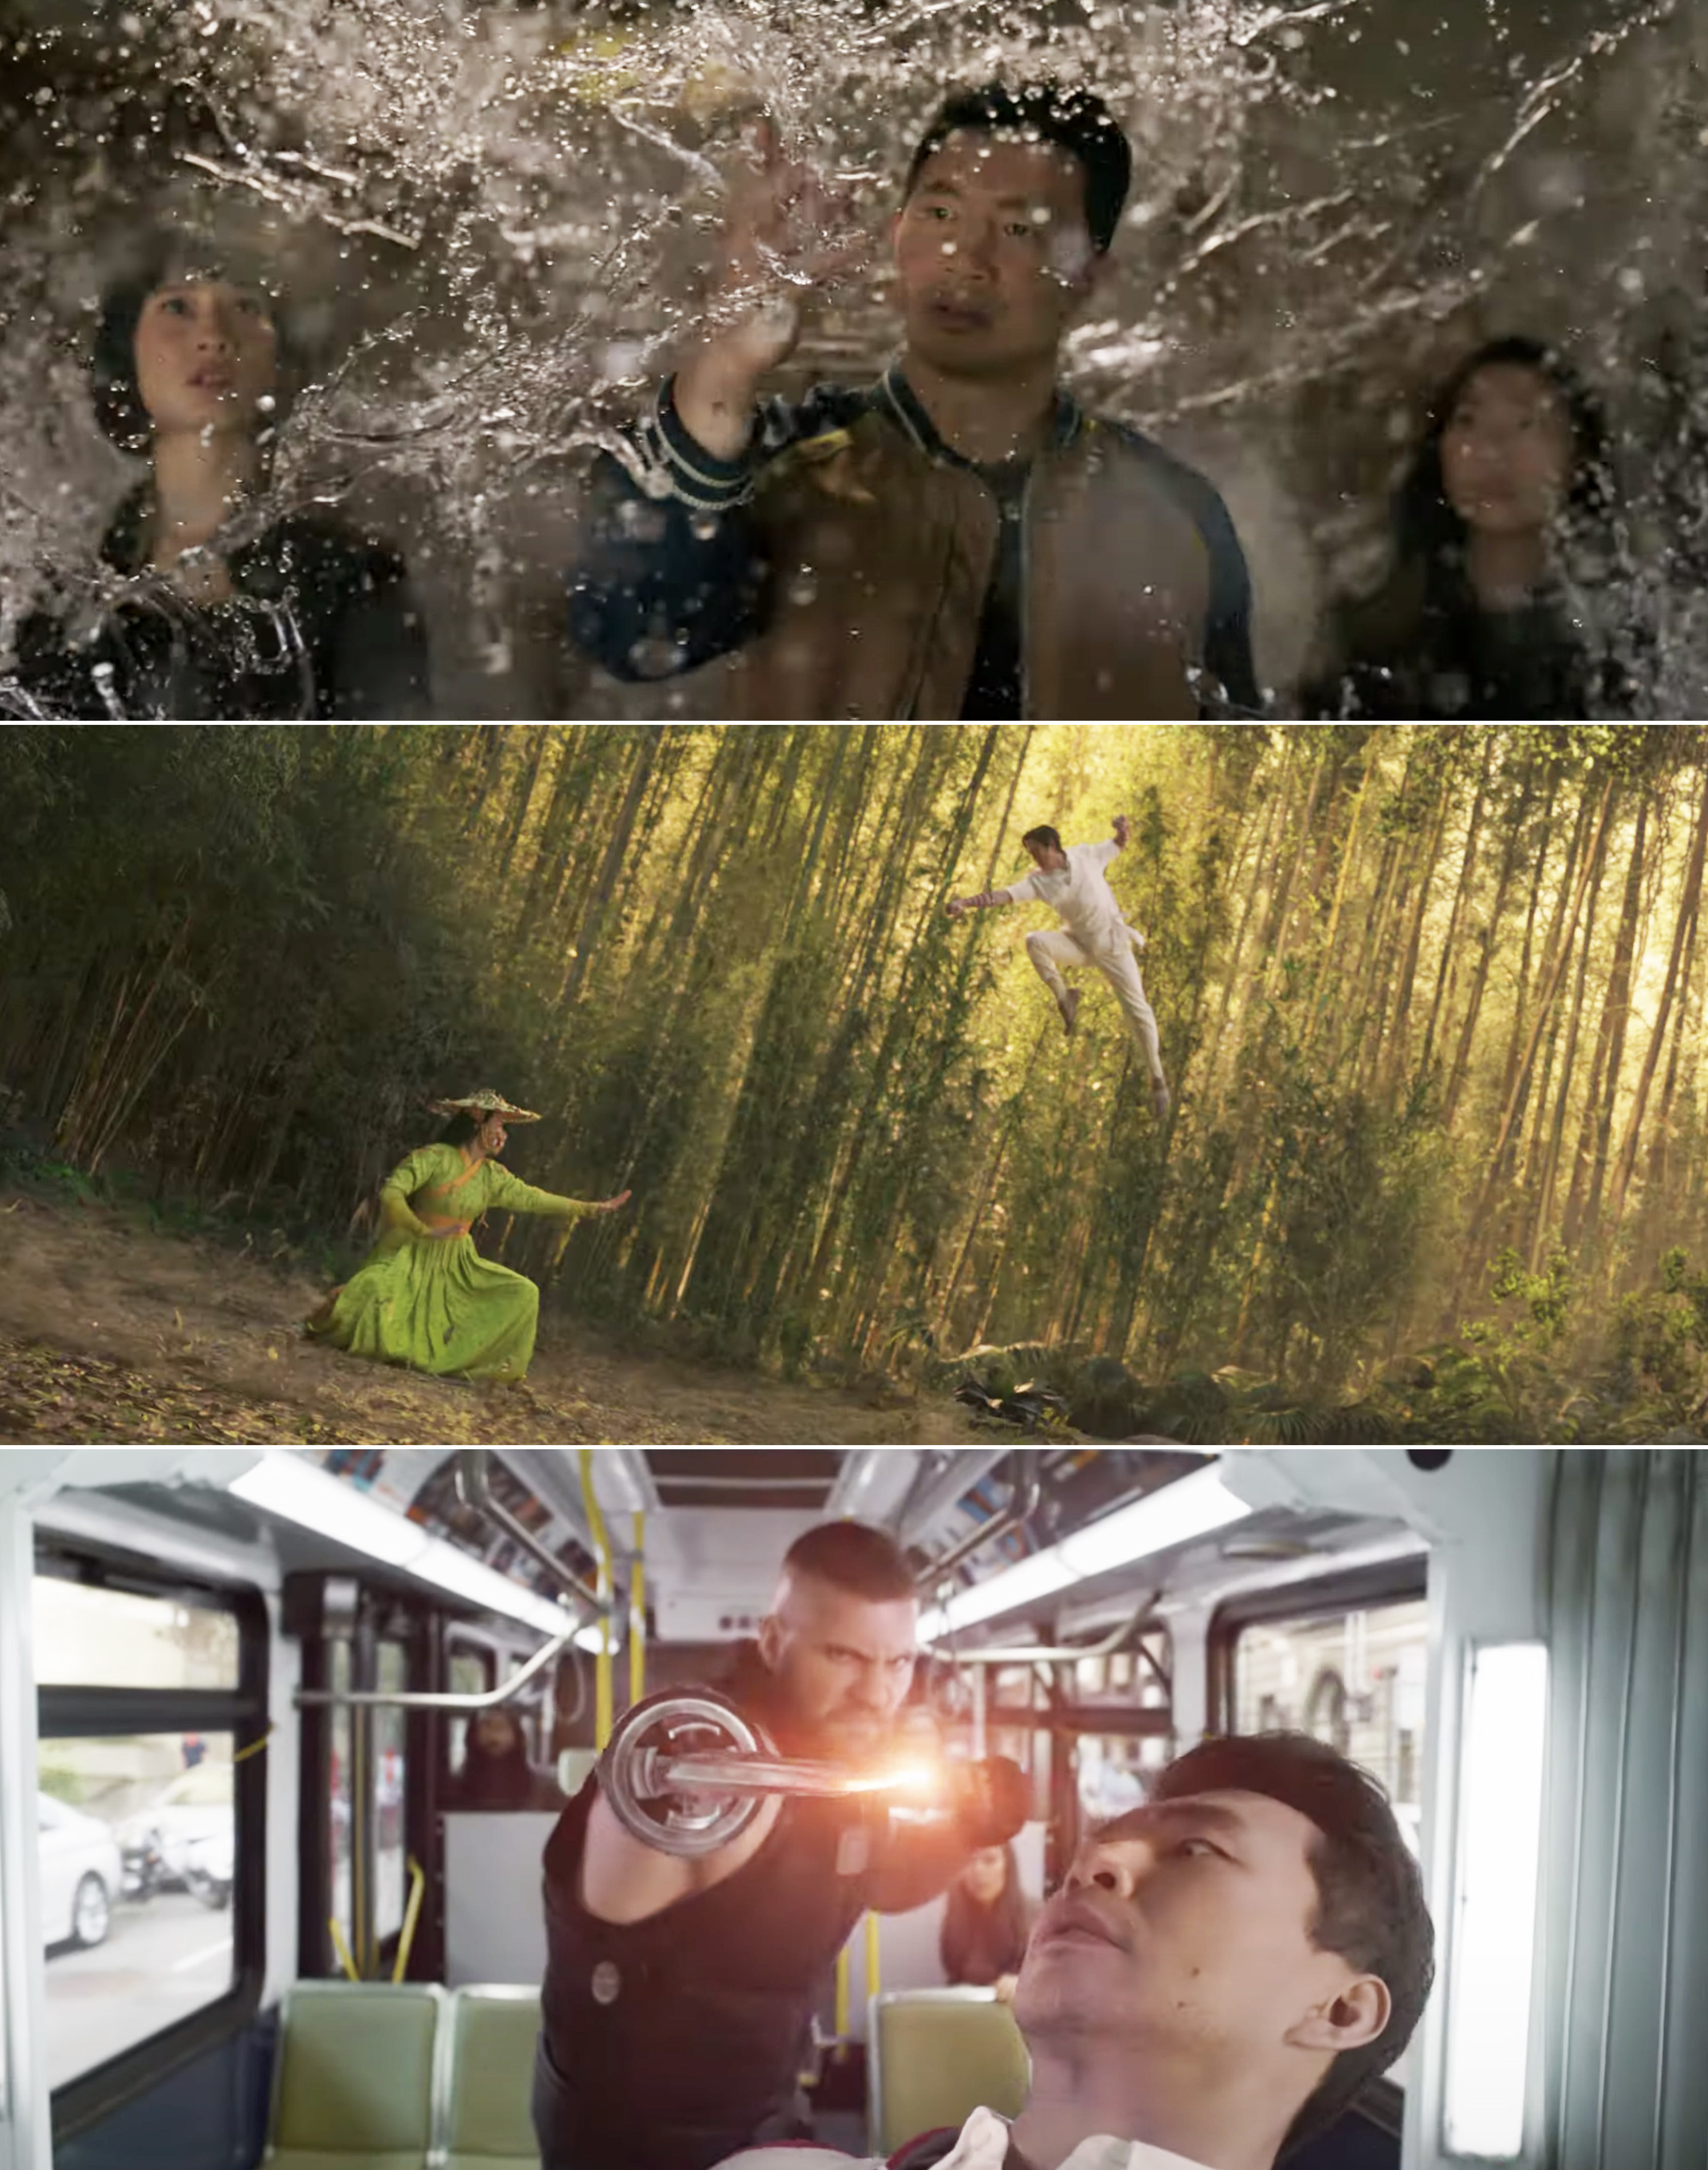 Simu touches water that seems to float in the air; a high-flying fight in a forest; and a fight scene on a moving bus